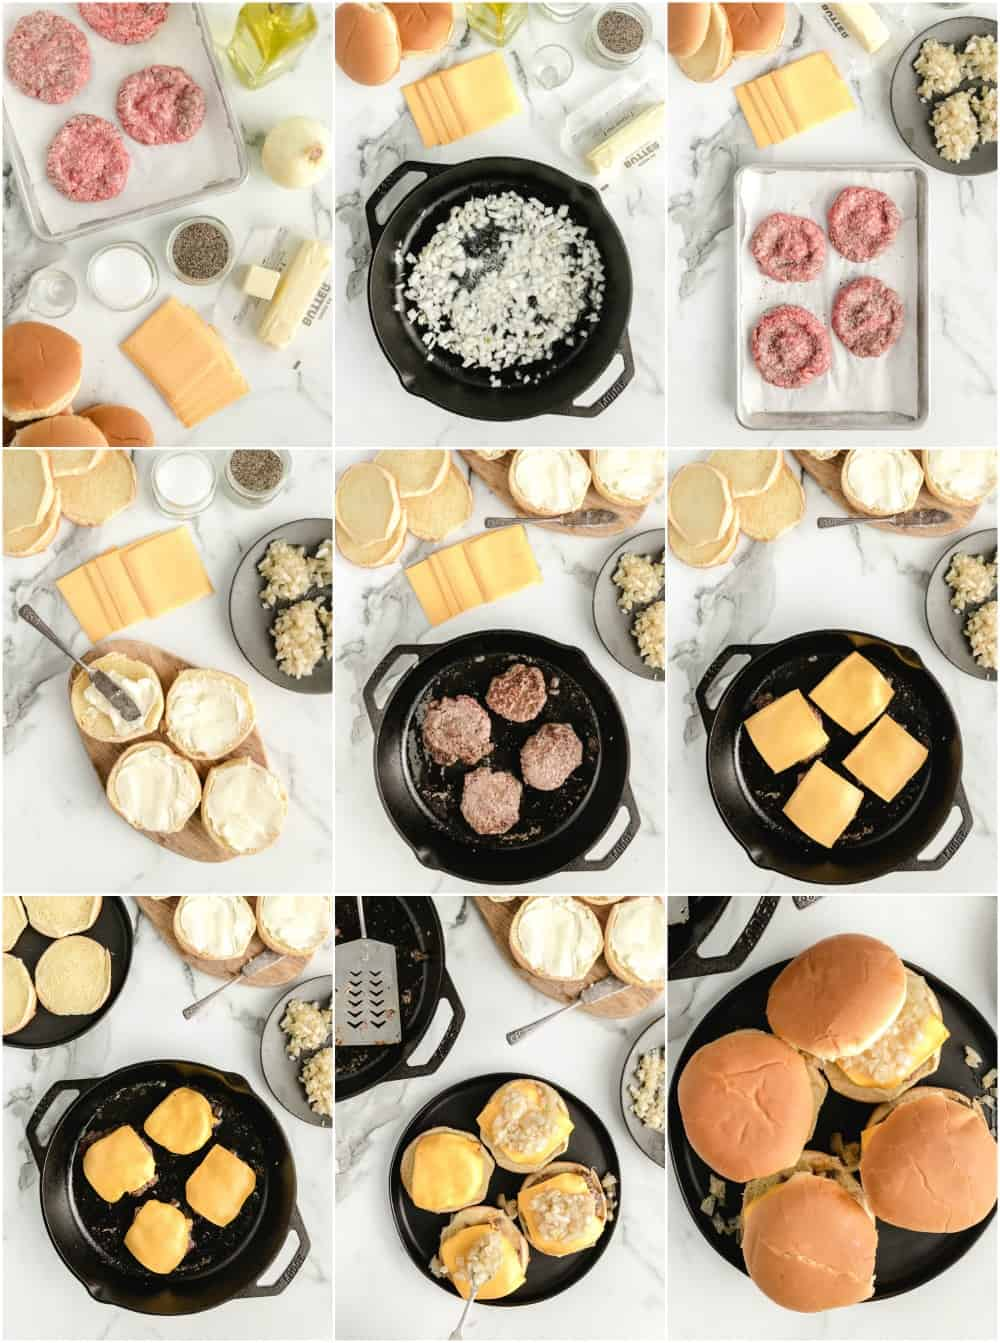 how to make butter burgers step by step process shots